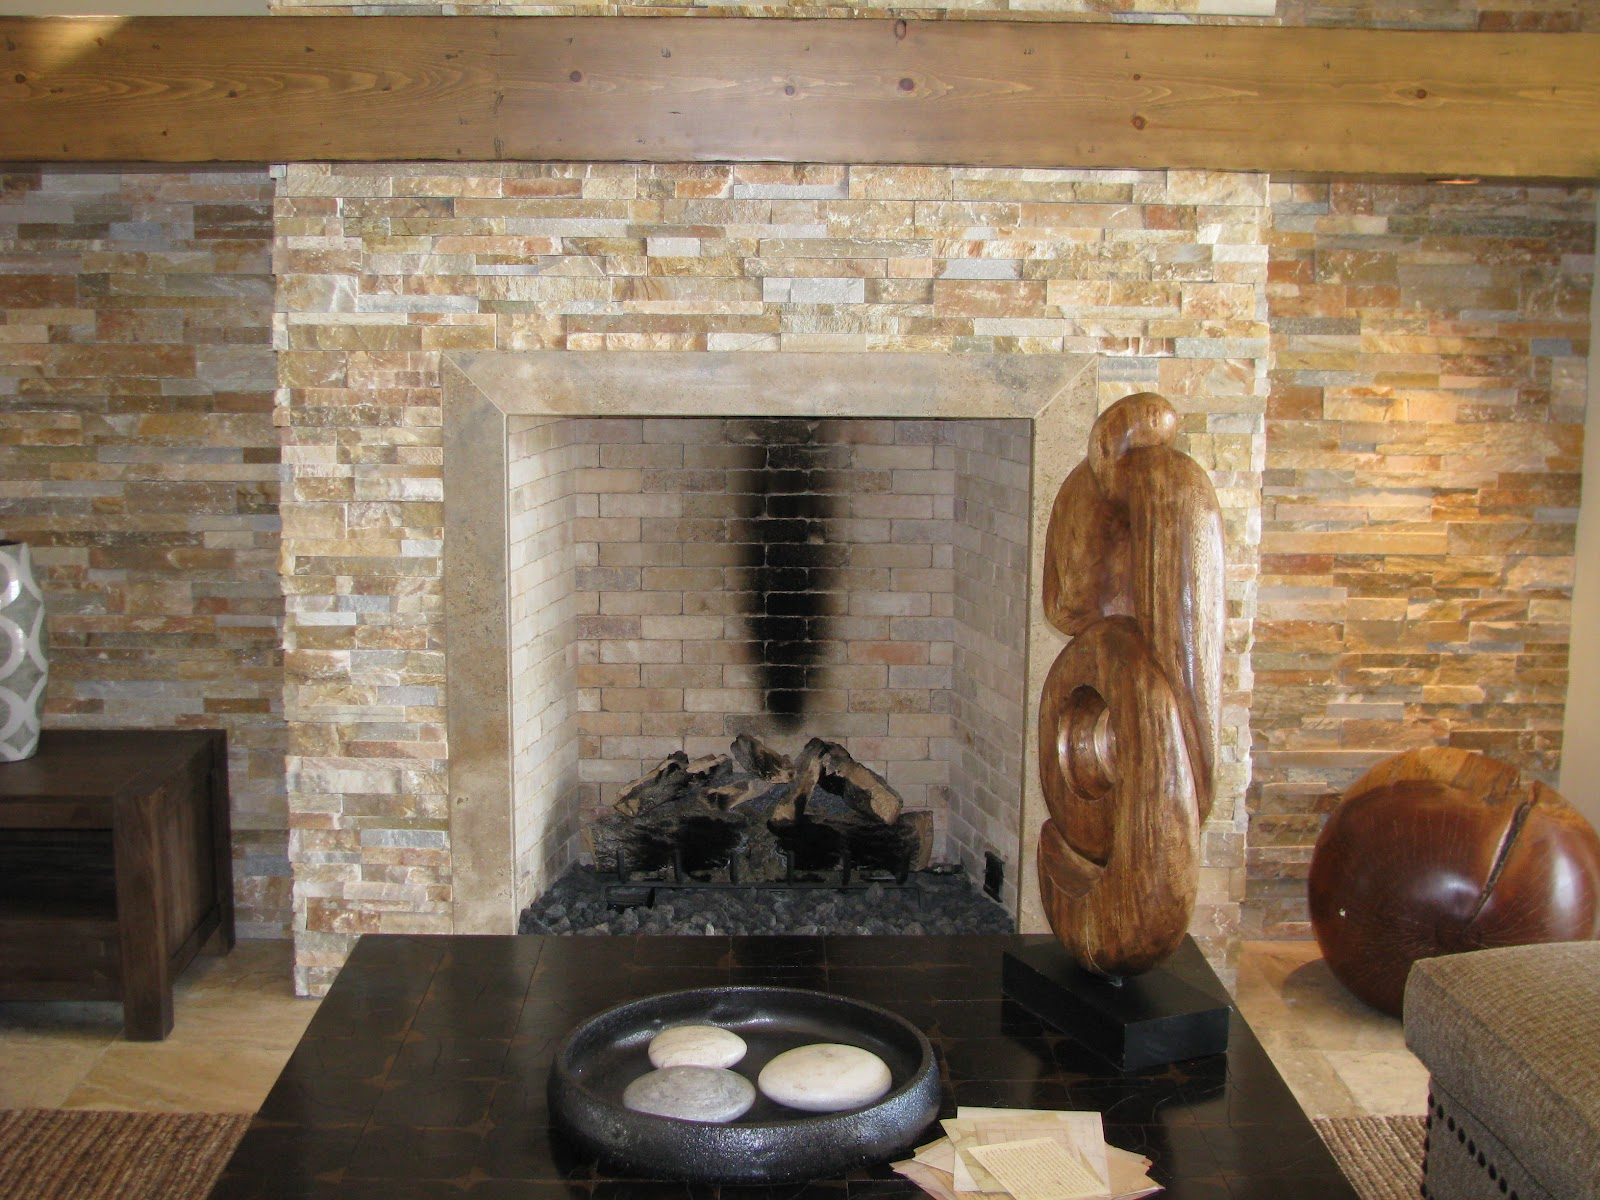 Firestarter News By Earthcore How Do I Repair My Fireplace 39 S Fire Brick